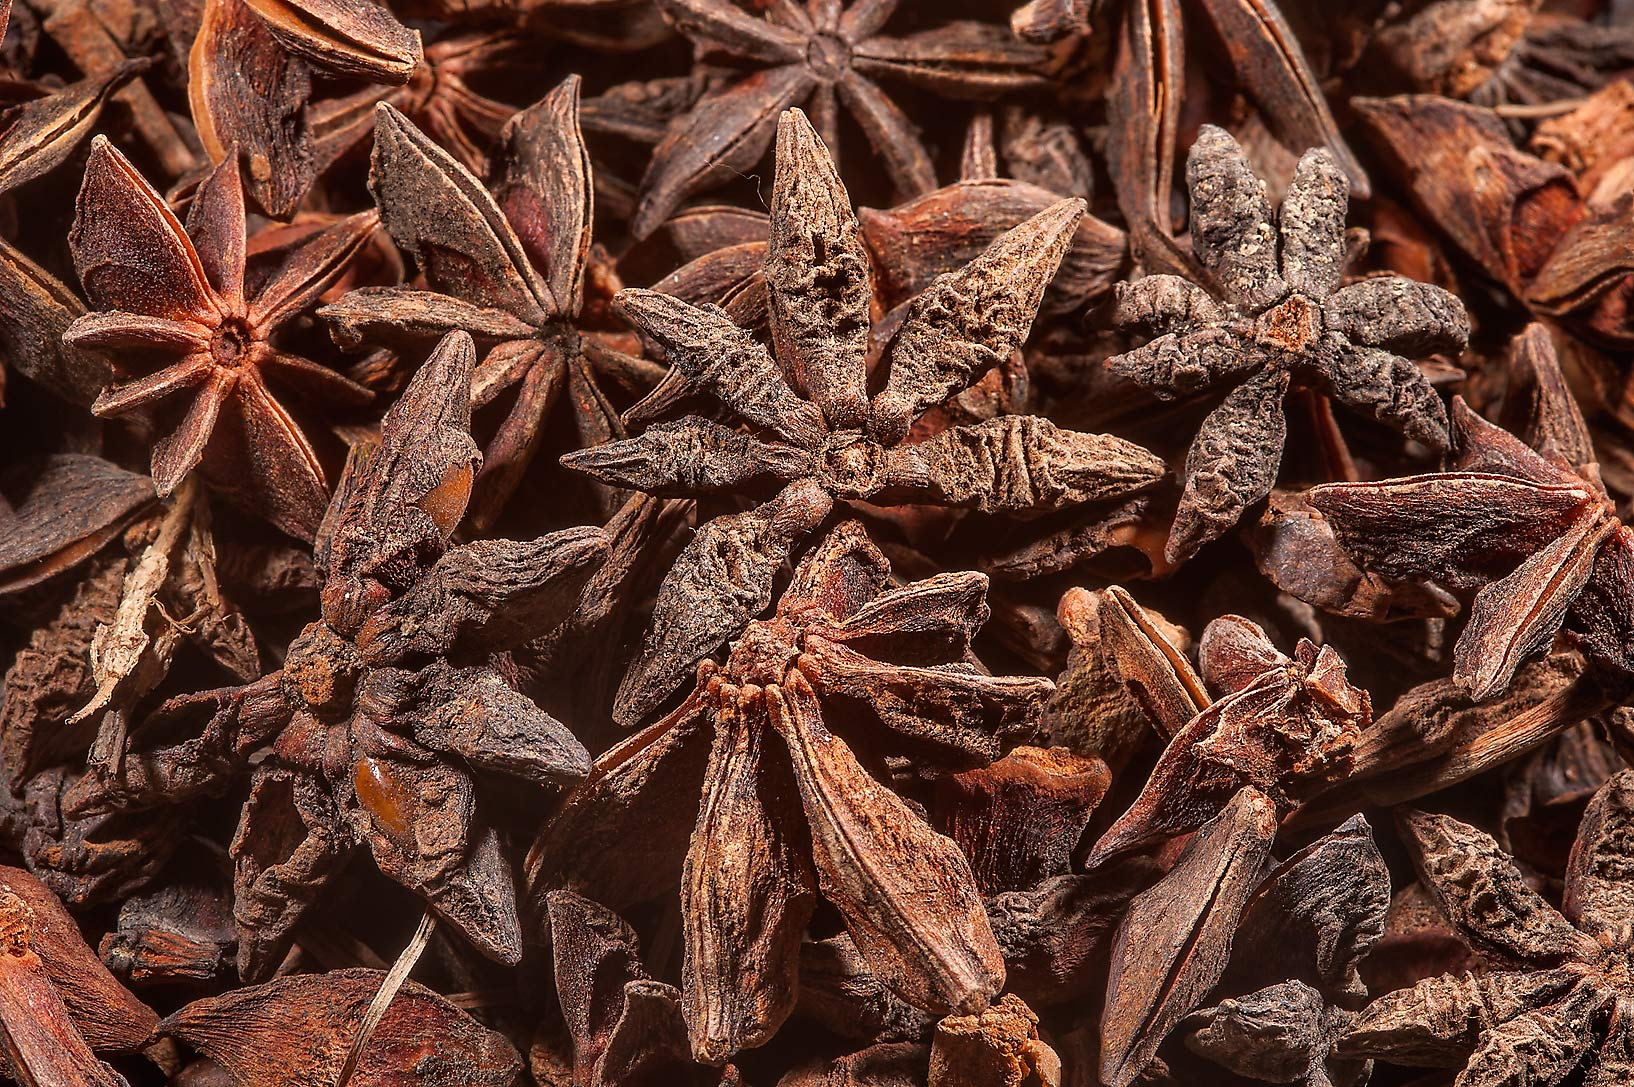 Star anise in spice section in Souq Waqif (Old Market). Doha, Qatar